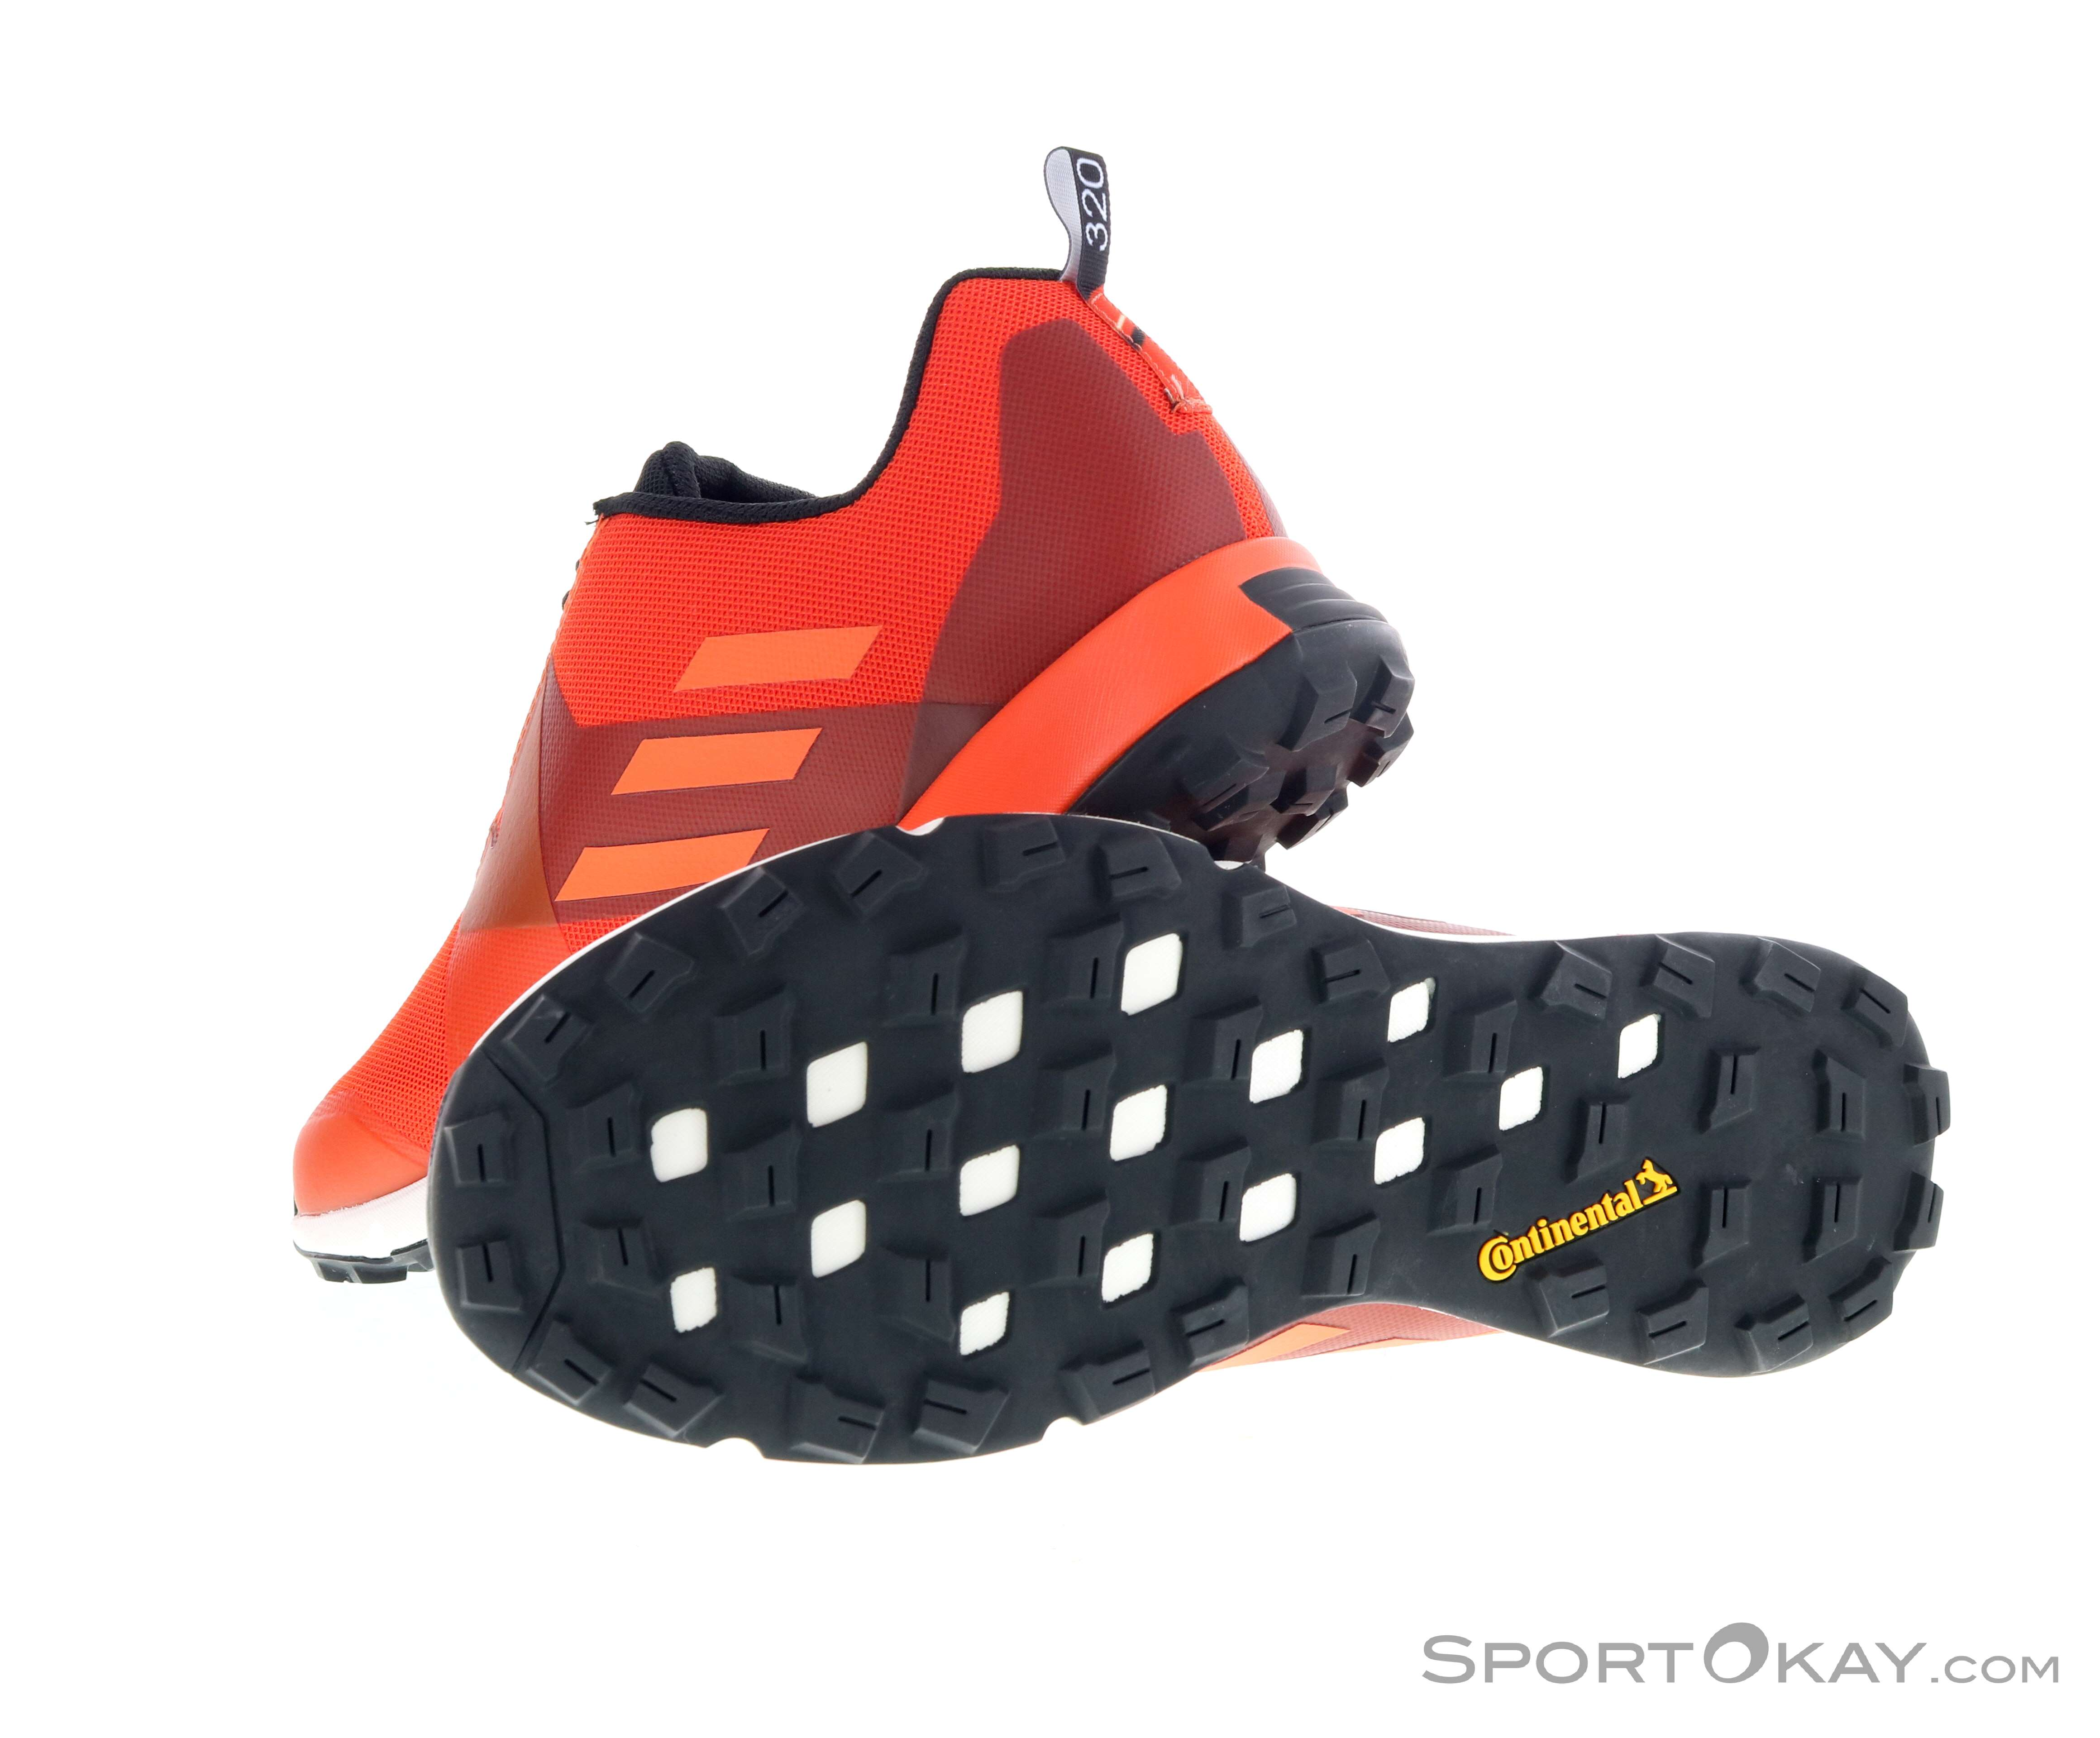 Men's Adidas CrazyTrain Elite Training Shoe Availability: Out of stock $140.00